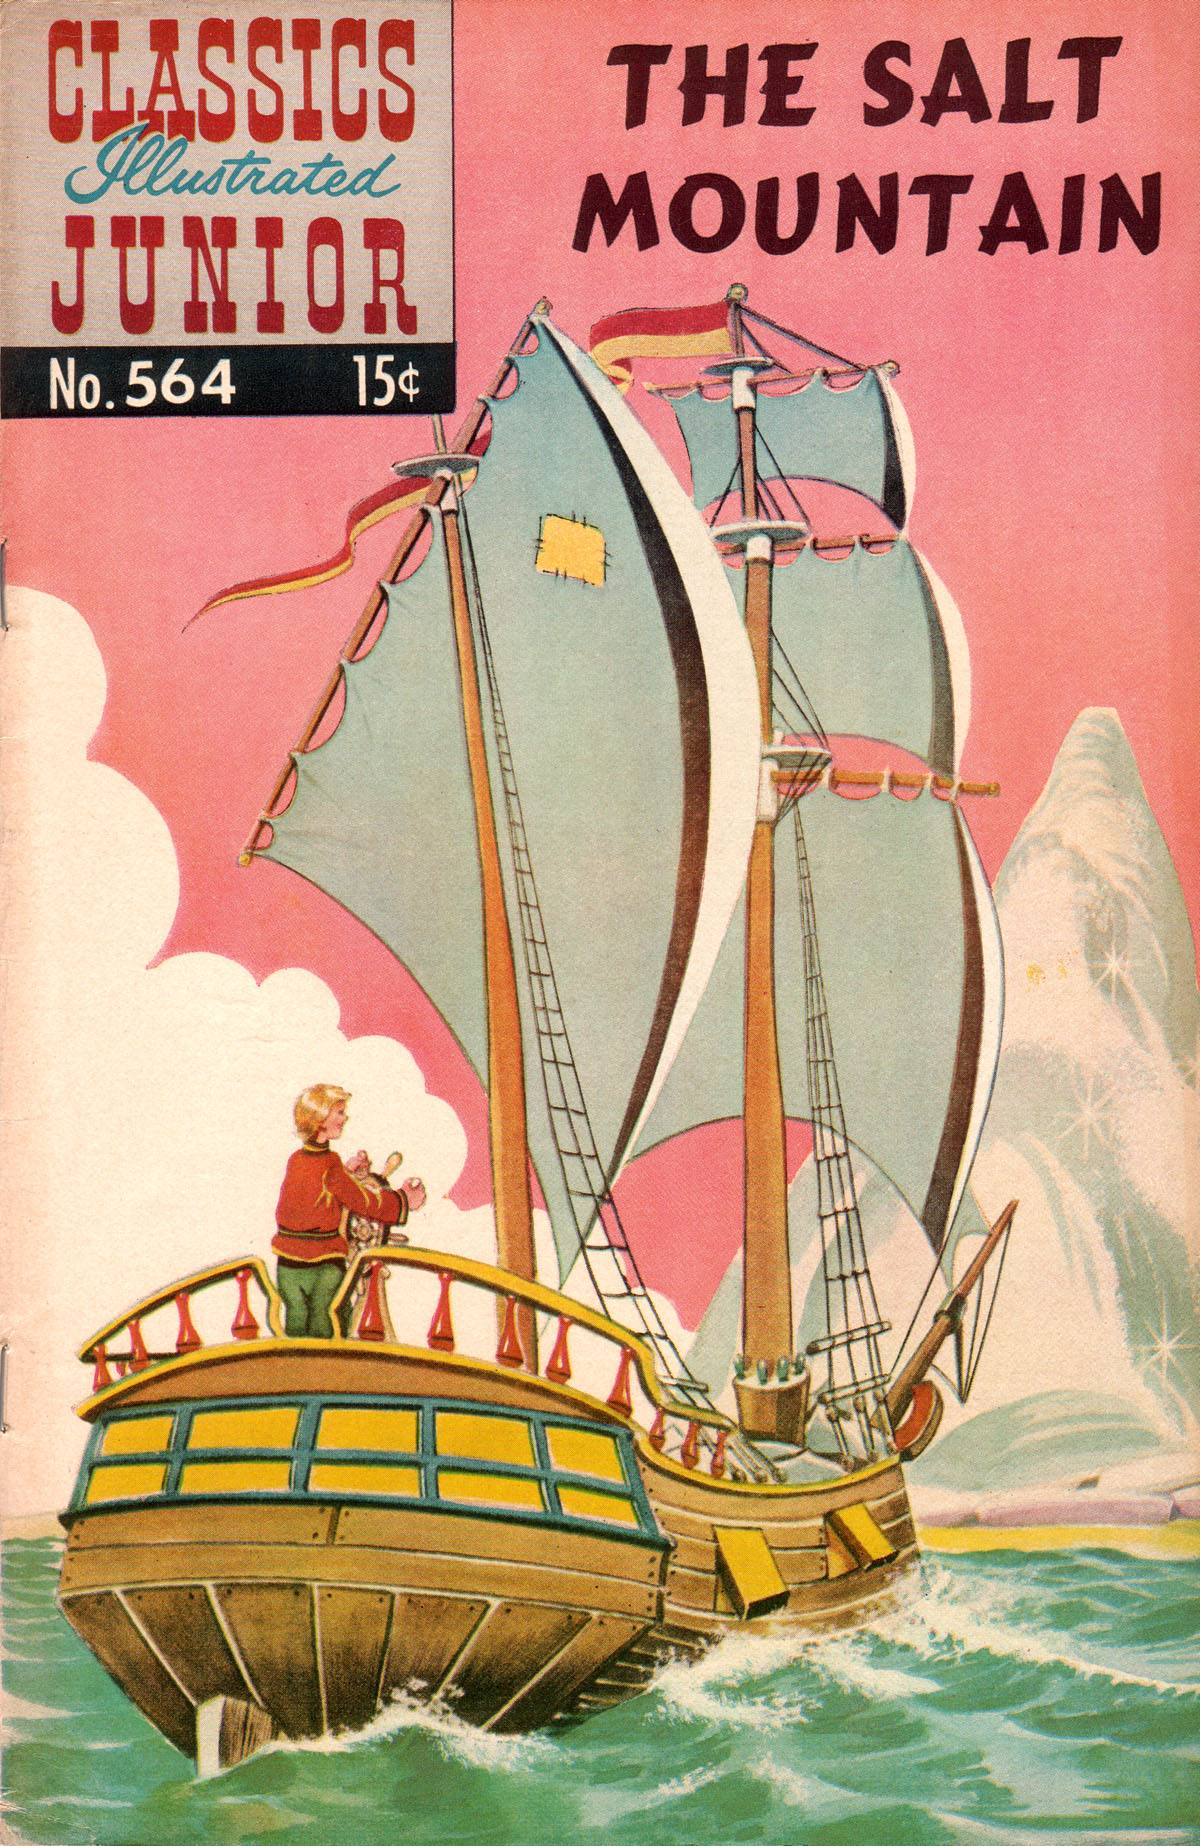 Classics Illustrated Junior 564 Page 1